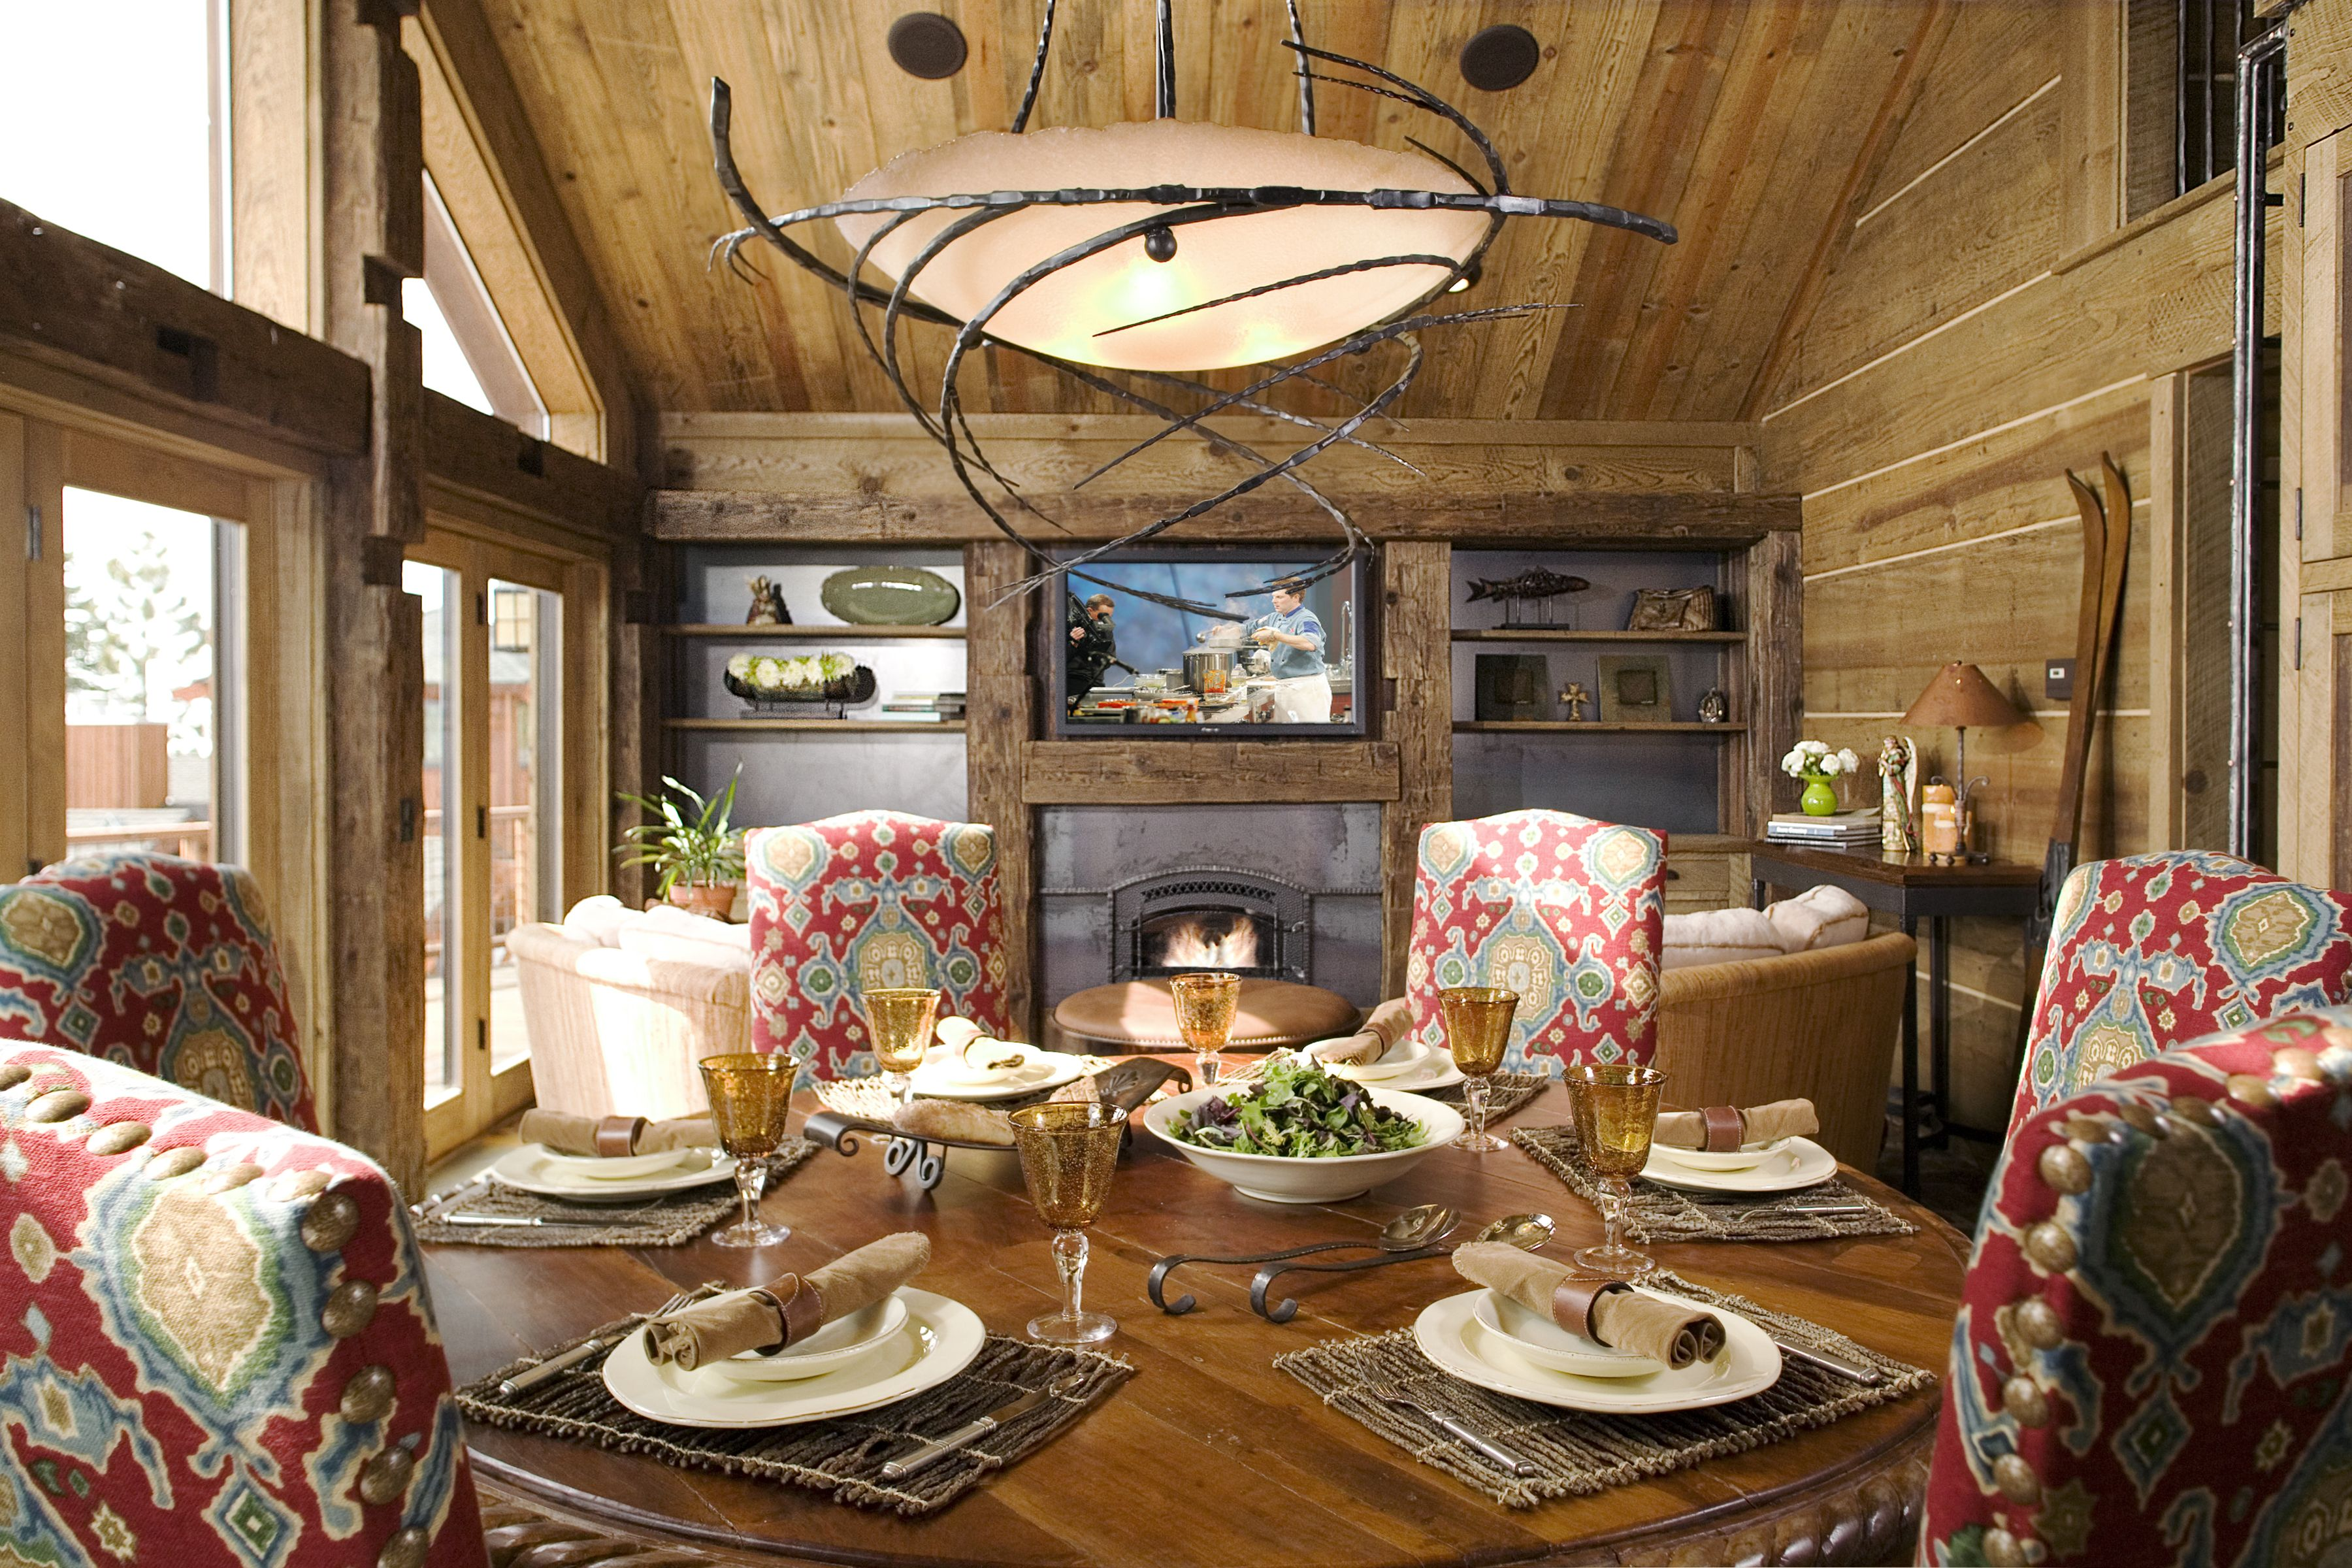 Ski Slope High Camp Home Interior Design Truckee Ca Rustic